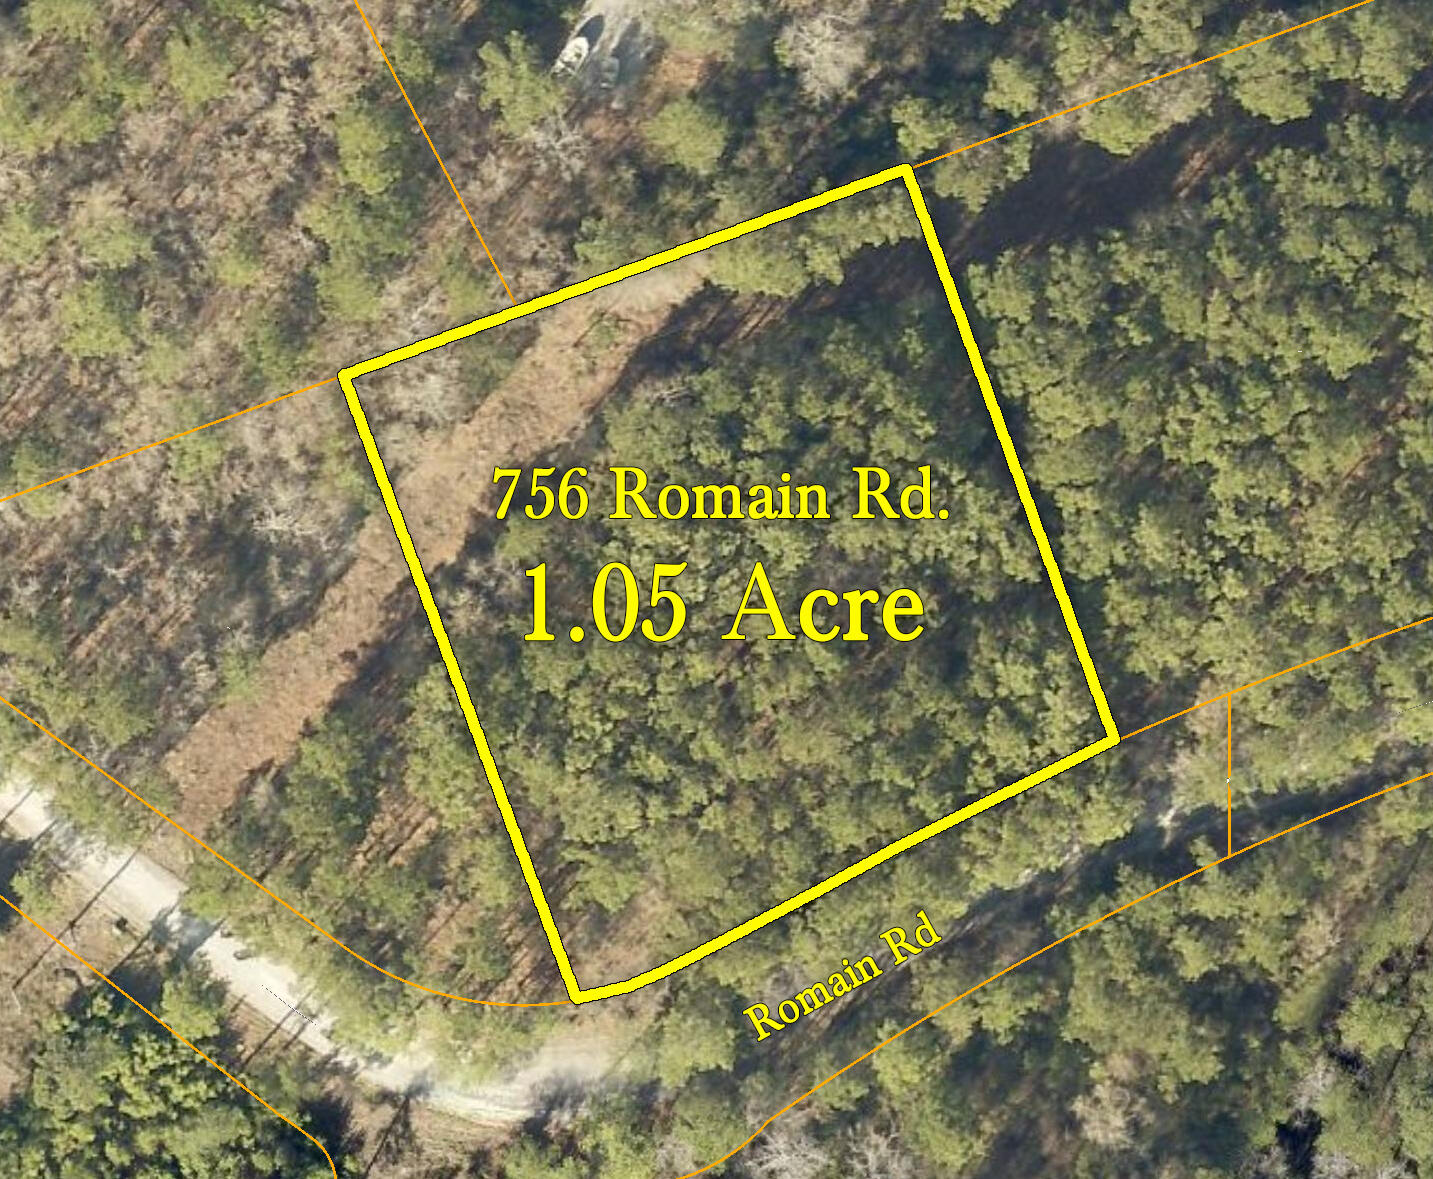 1.05-acre wooded lot in beautiful Skipper's Point community of McClellanville sharing one boundary with community green space. Less than a mile to Cape Romain Environmental Education Charter School (CREECS) which serves grades 4K-8th. Enjoy all that McClellanville has to offer within minutes to the restaurants, shops, seafood markets, and boat landing. No mobile homes allowed. HOA exists to maintain the private roads. Septic permit being applied for.